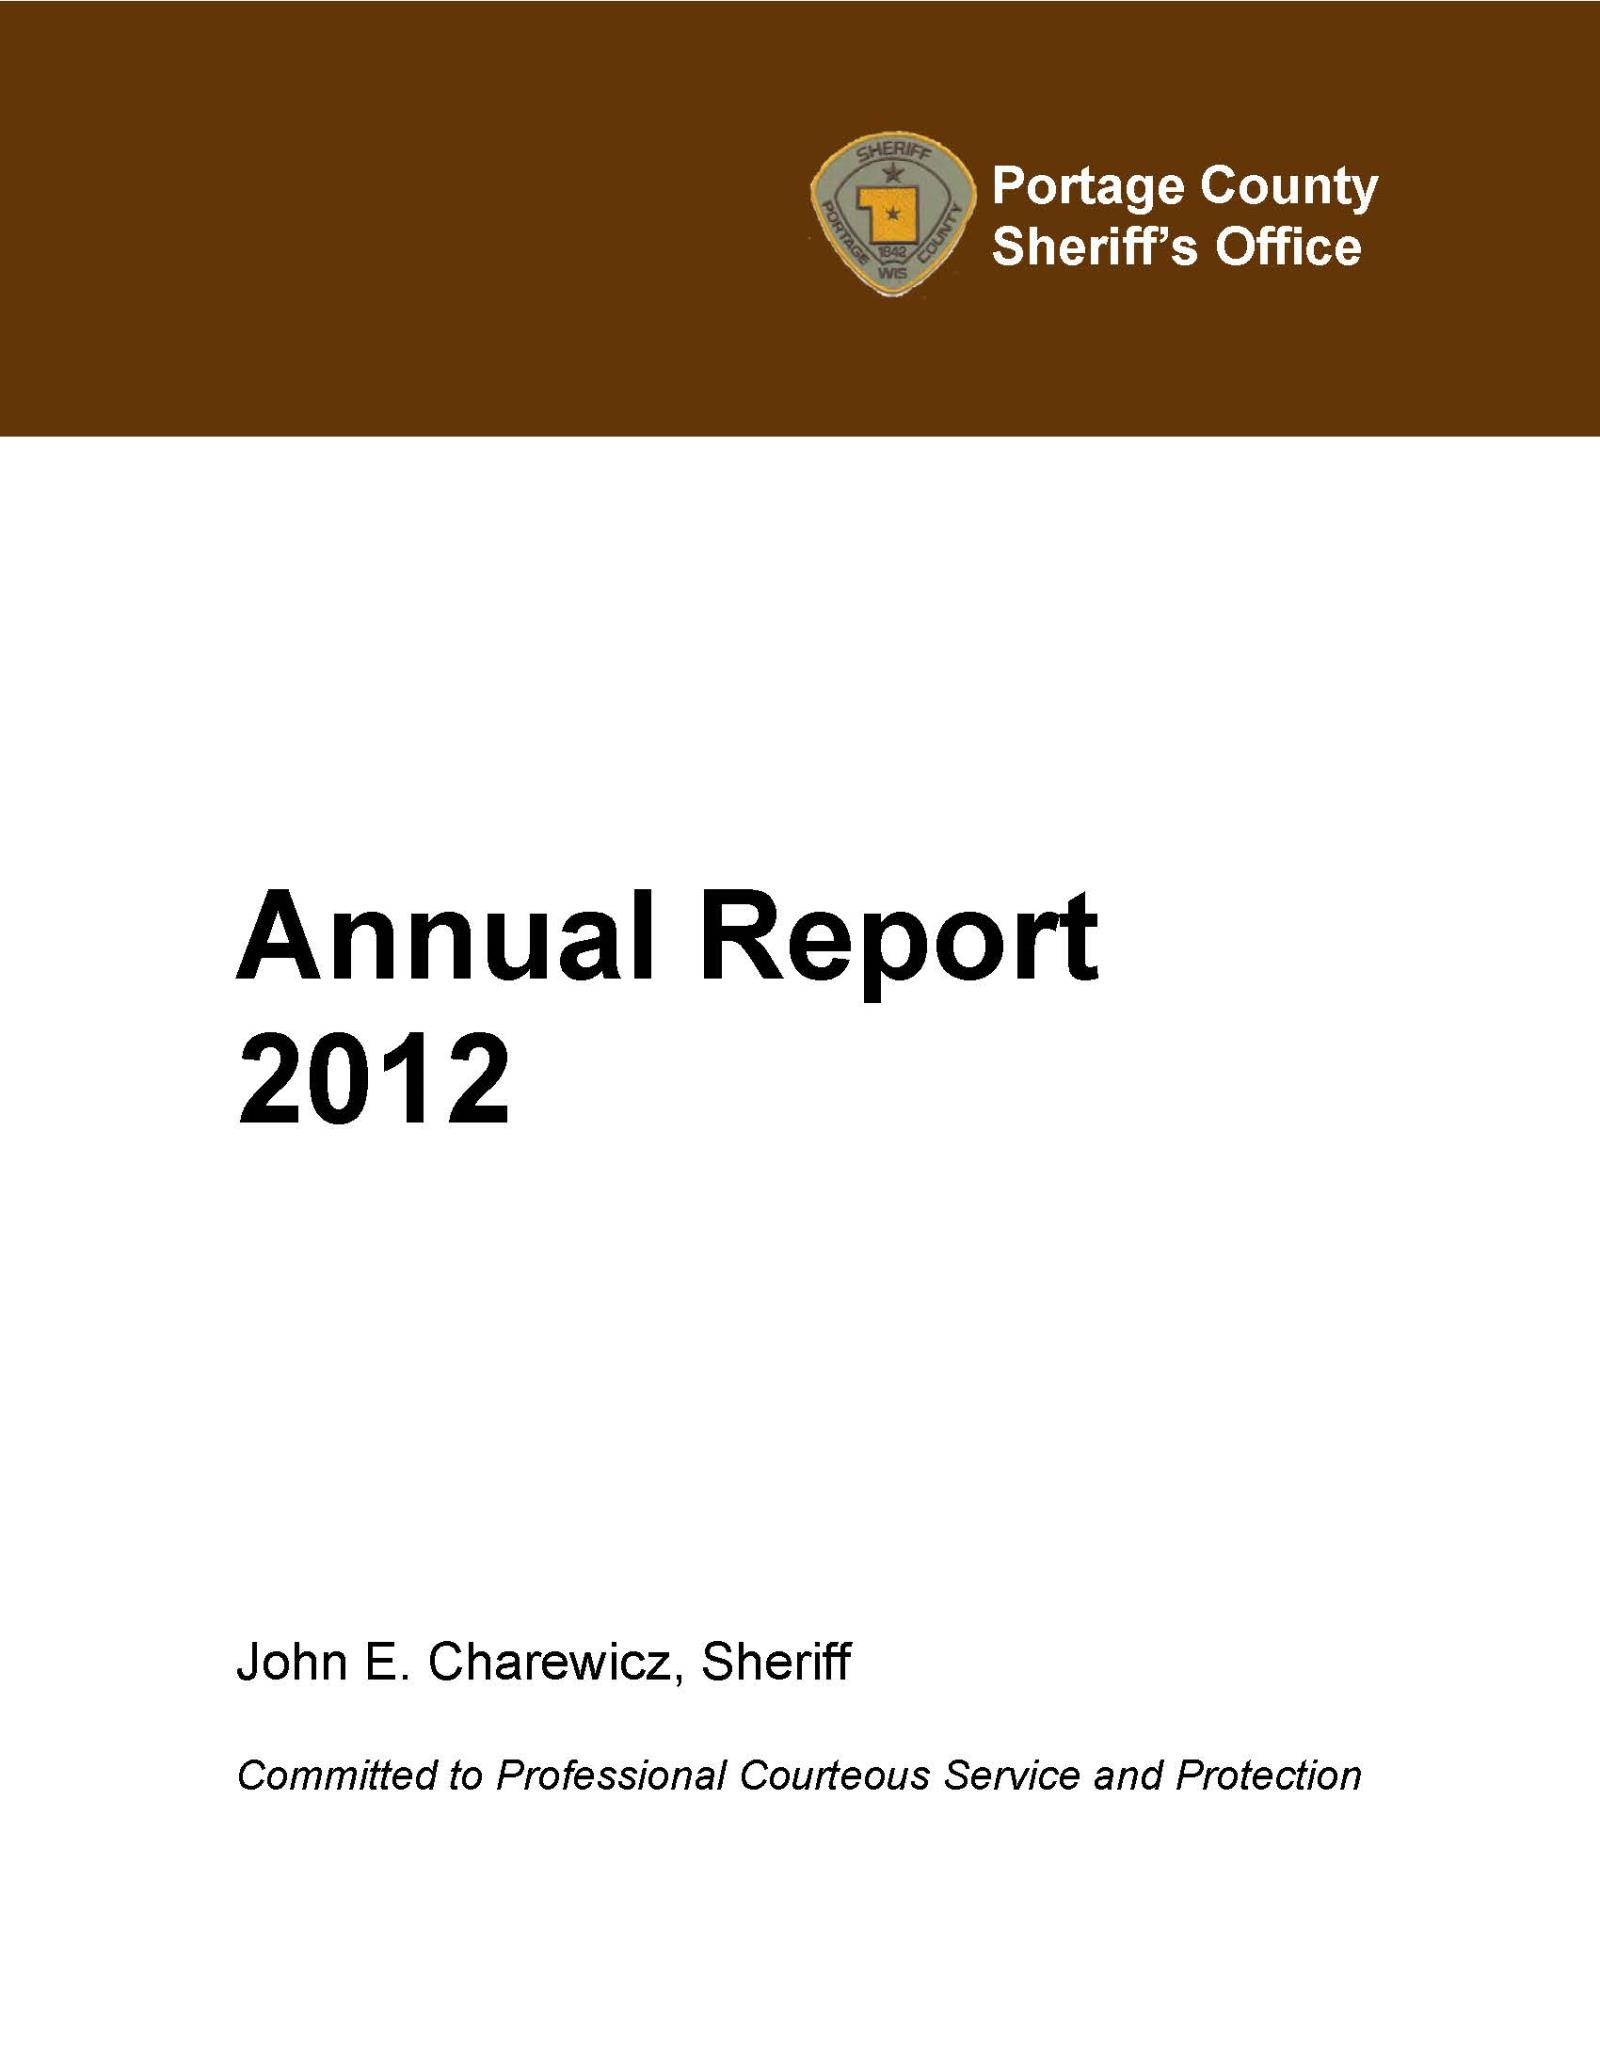 Annual Report 2012 Cover